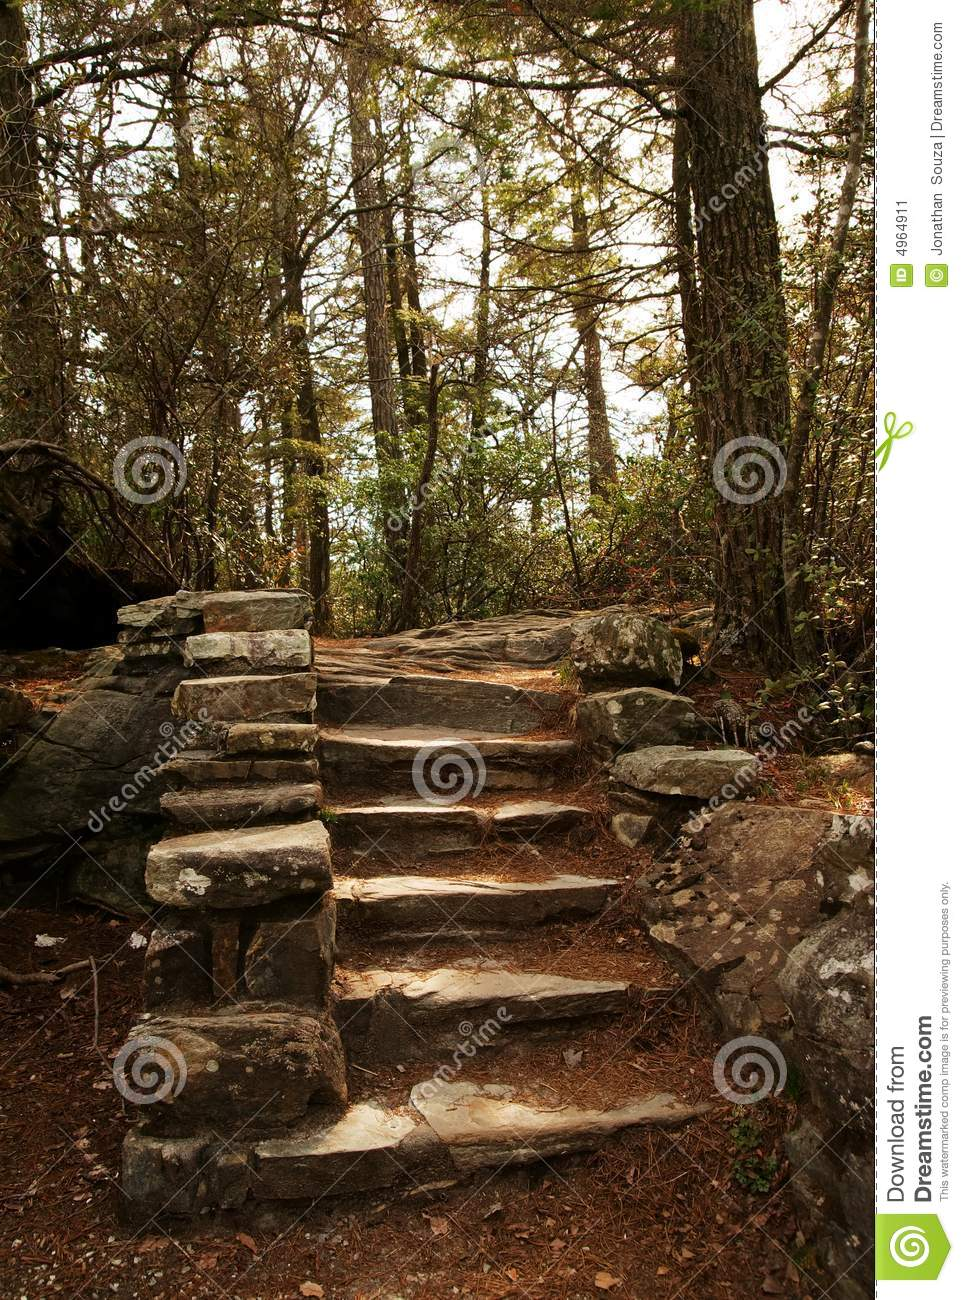 stone stair steps in nature forest stock image